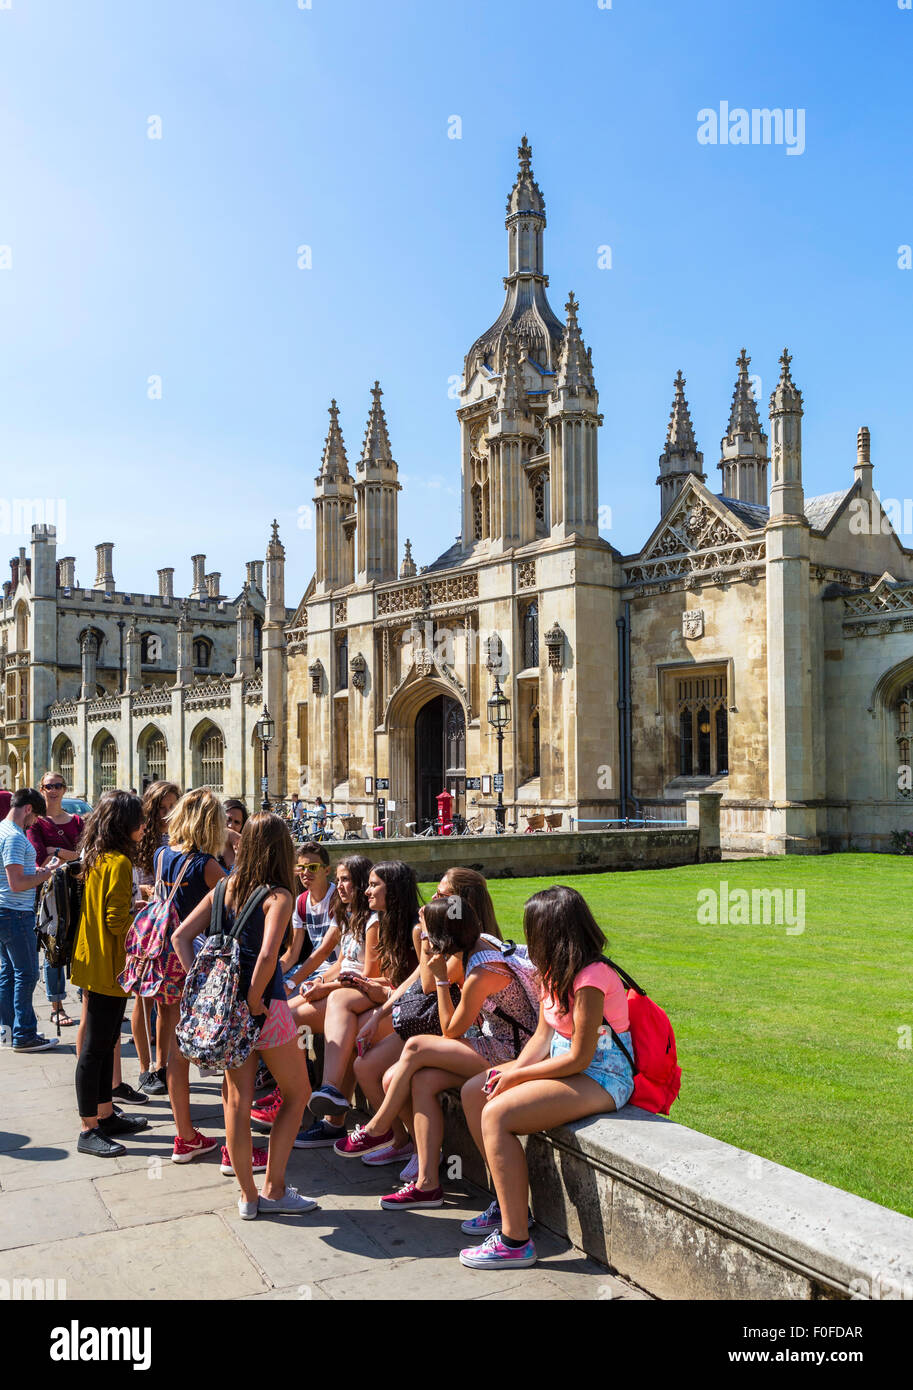 Young foreign students sitting outside King's College, King's Parade, Cambridge, Cambridgeshire, England, UK - Stock Image